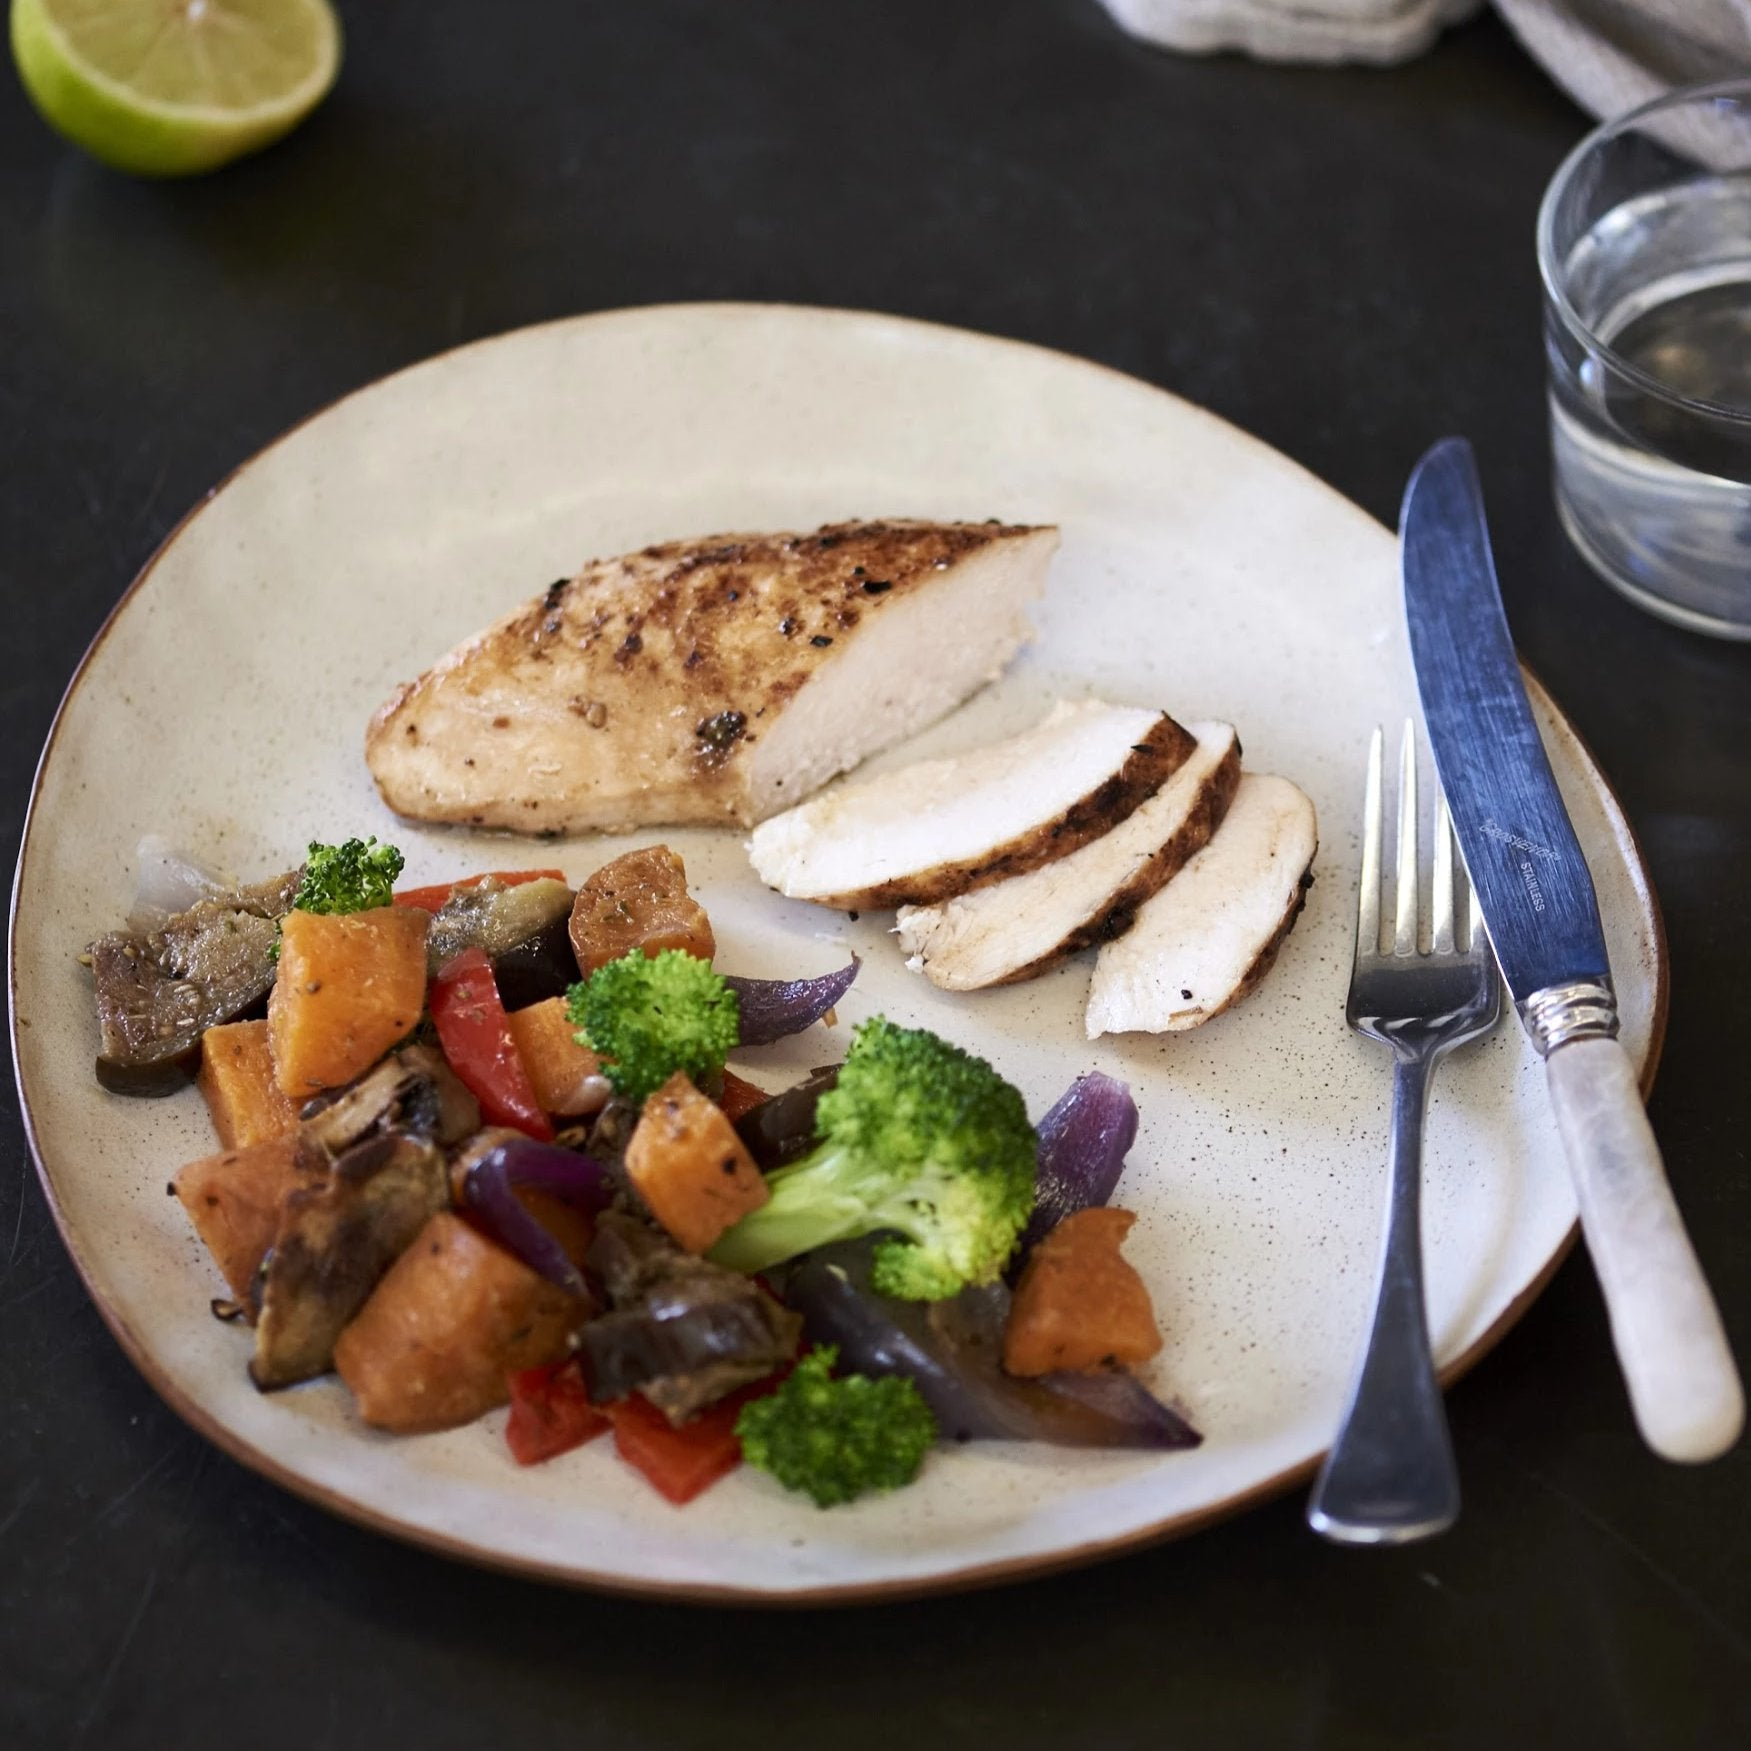 Lemon & Herb Chicken with Mediterranean Vegetables